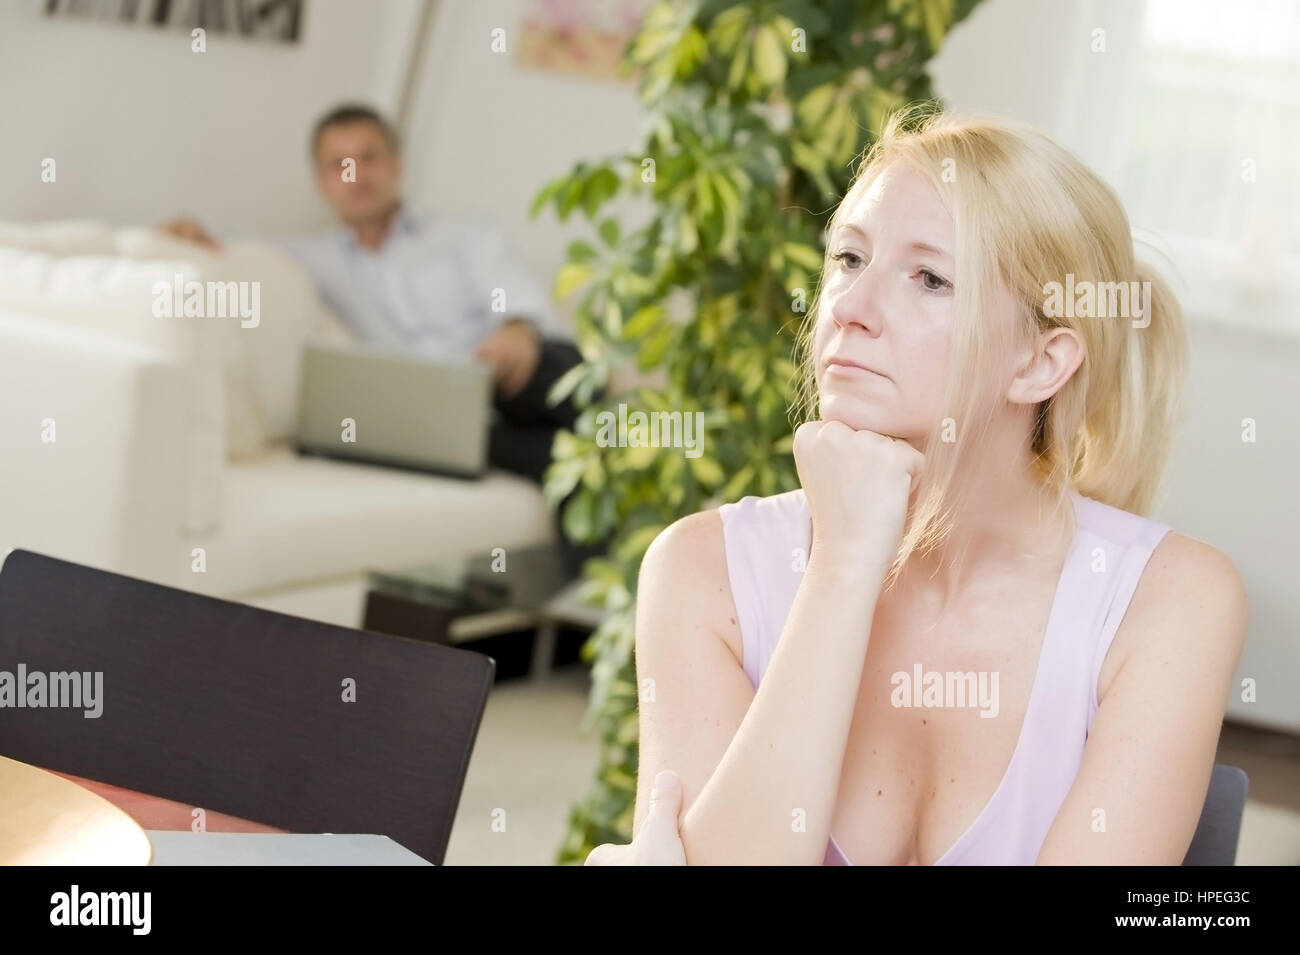 Model released , Symbolbild Beziehungskrise - symbolic for crisis in a relationship Stock Photo